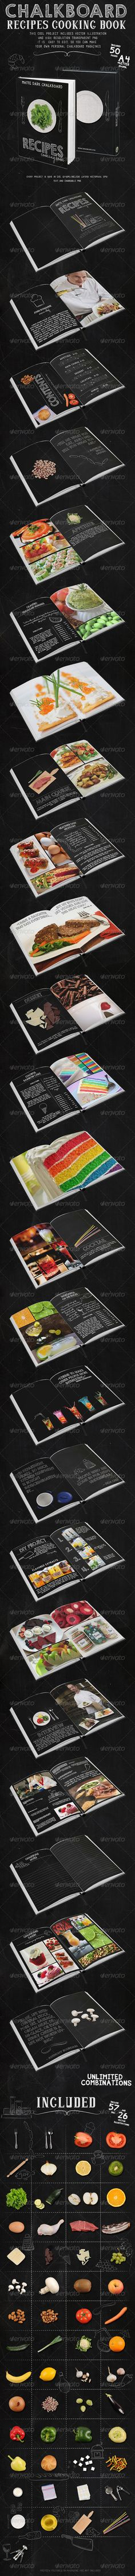 Chalkboard Recipes Cooking Book, #layout #recipes #indesign #template #cookbook #chalkboard